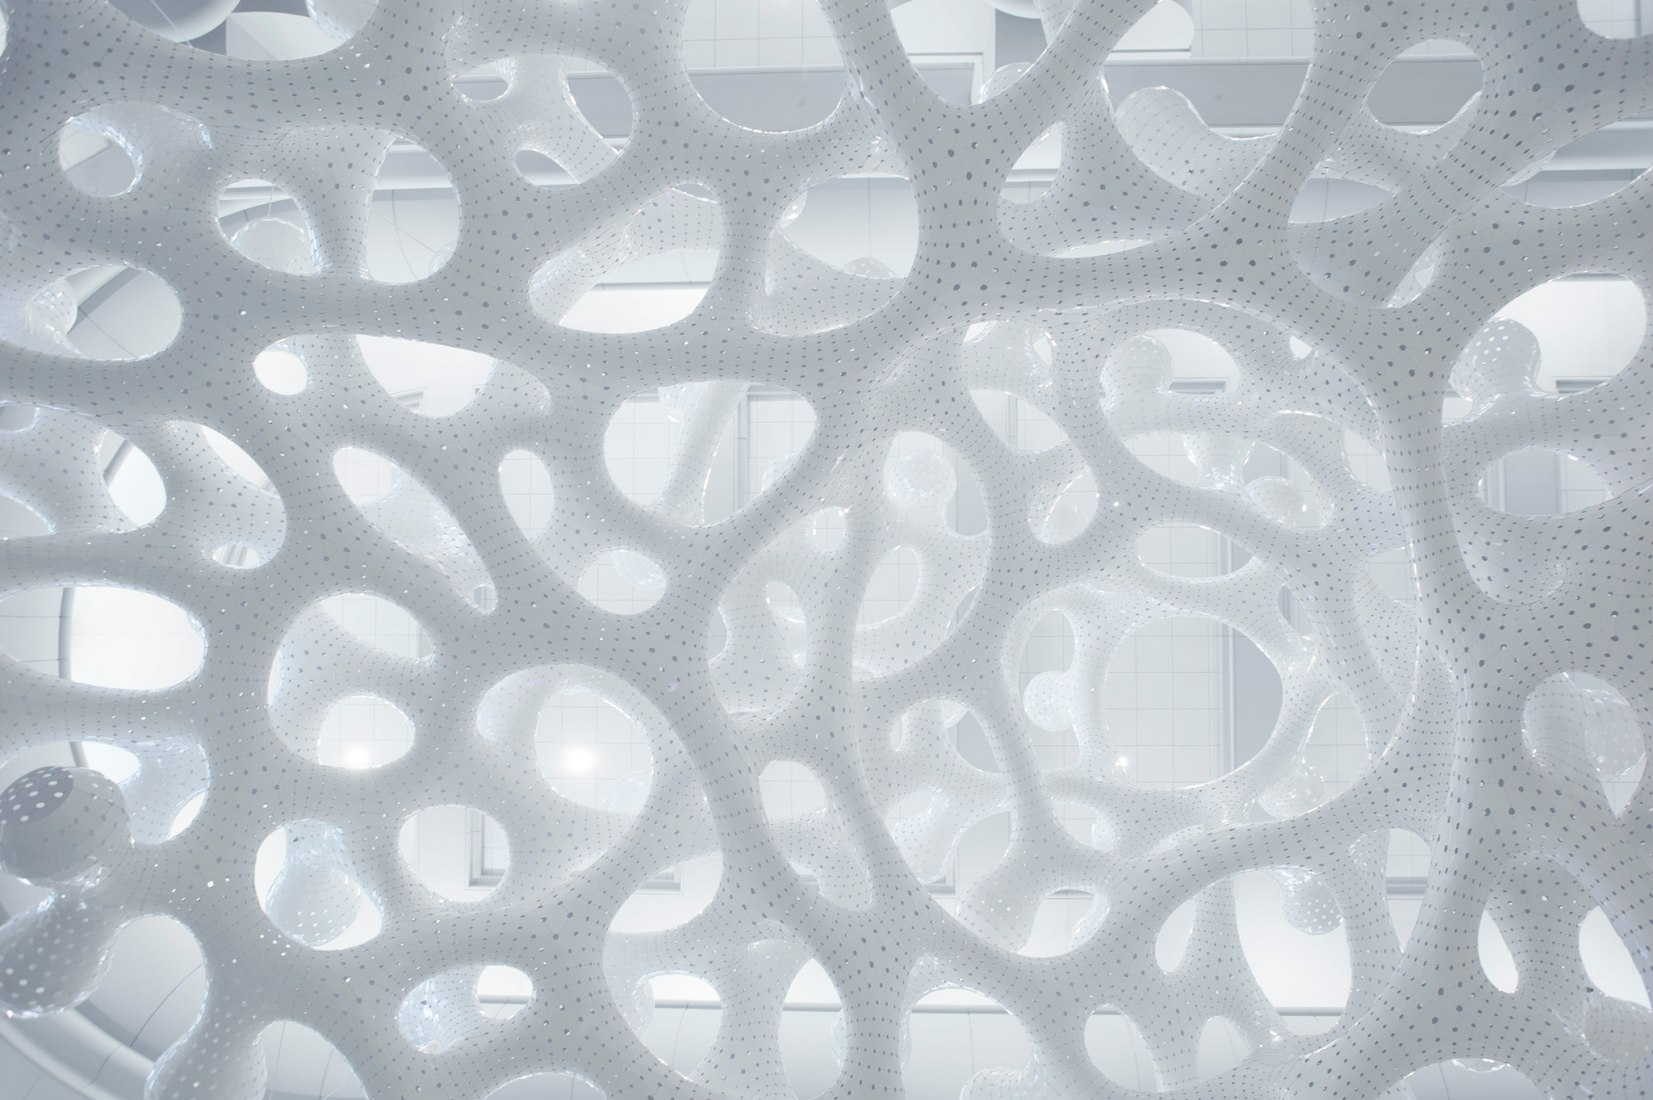 UNDER MAGNITUDE by MARC FORNES / THEVERYMANY. Photograph © courtesy of MARC FORNES / THEVERYMANY